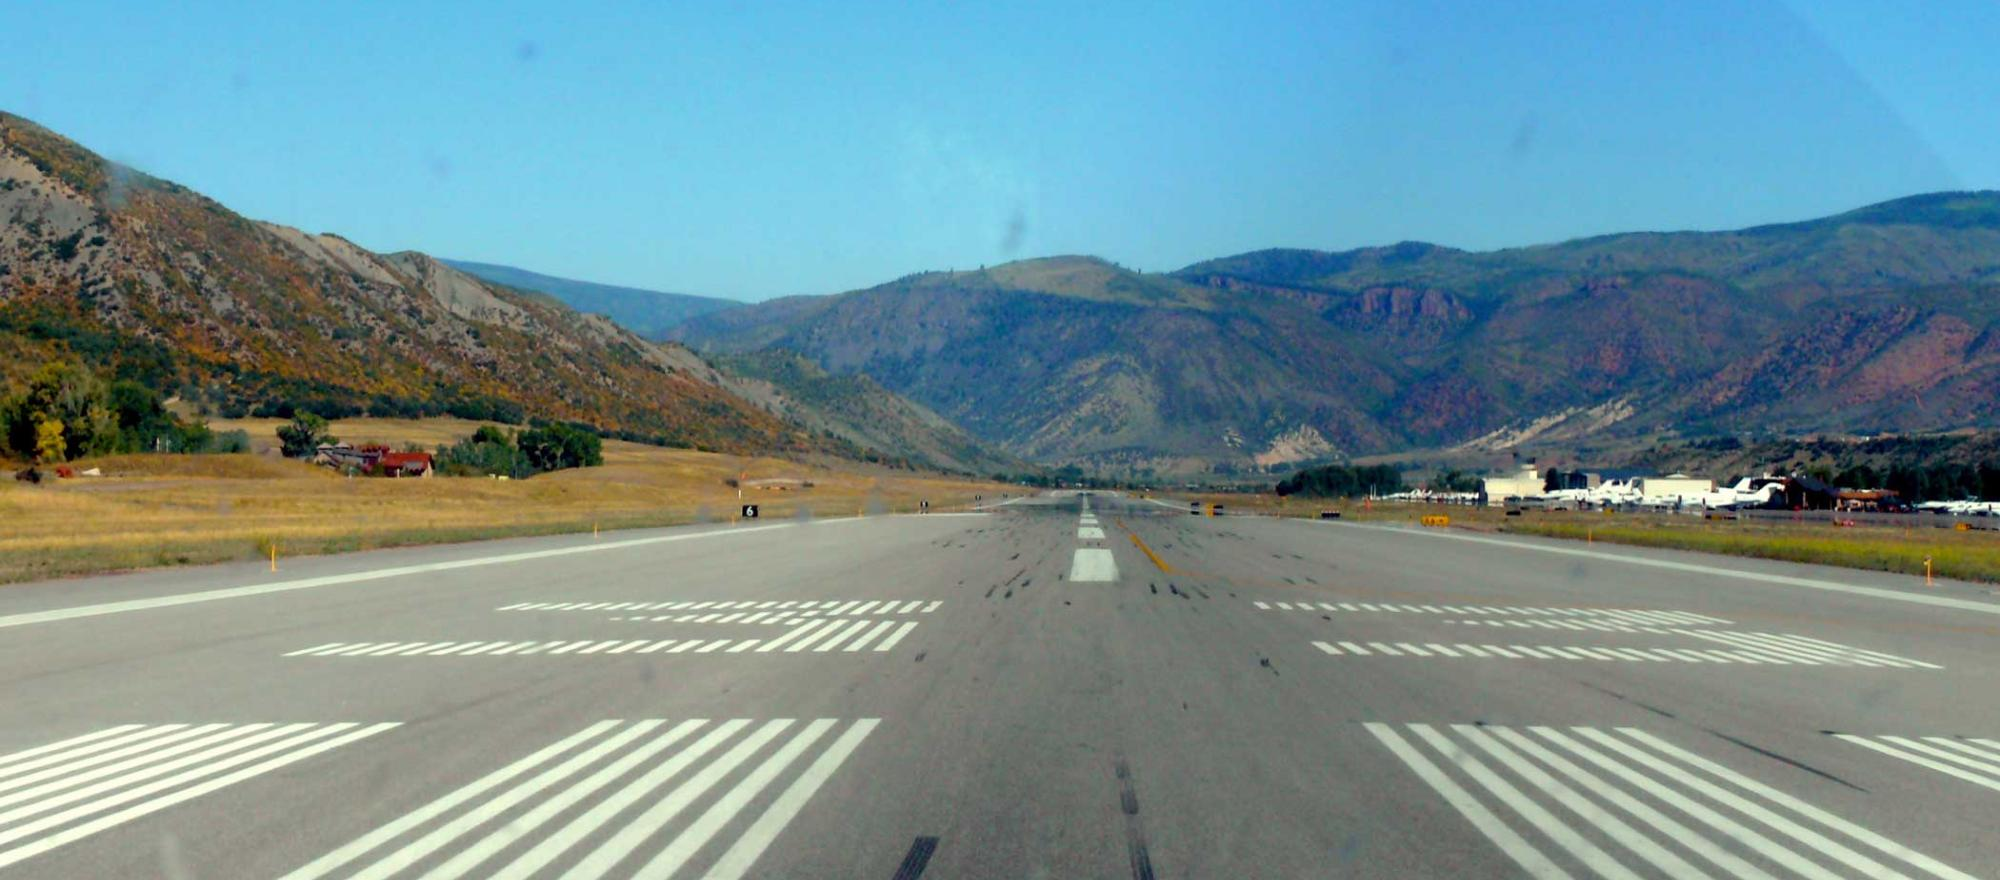 Aspen/Pitkin County [Colorado] Airport (ASE)